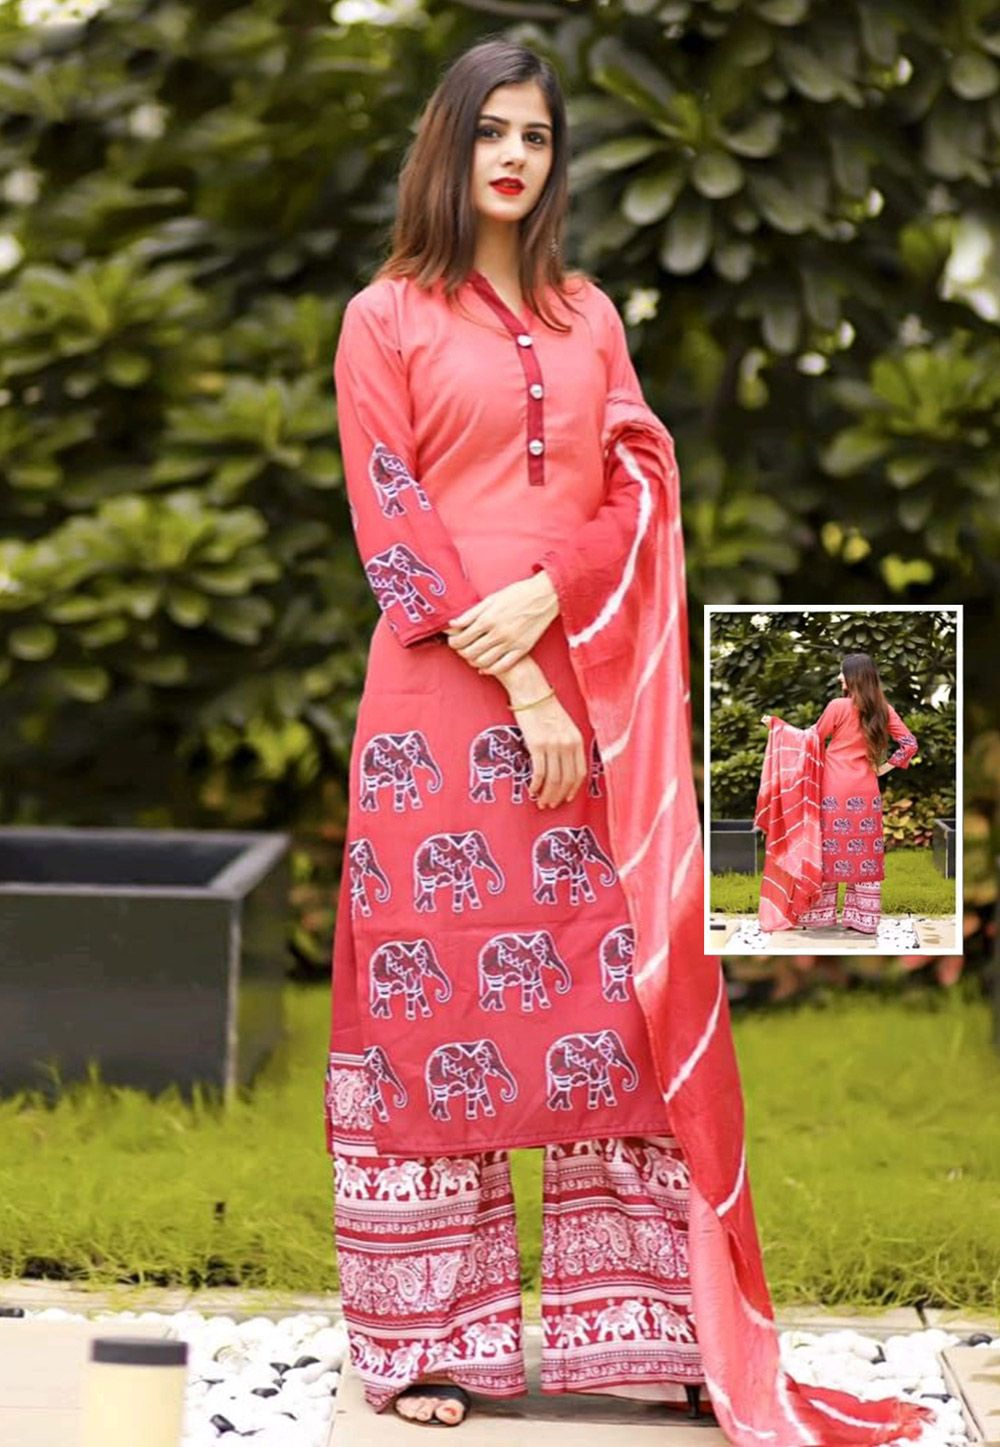 23c04a6cf9 Buy Pink Cotton Readymade Pakistani Style Suit 161526 online at lowest  price from huge collection of salwar kameez at Indianclothstore.com.